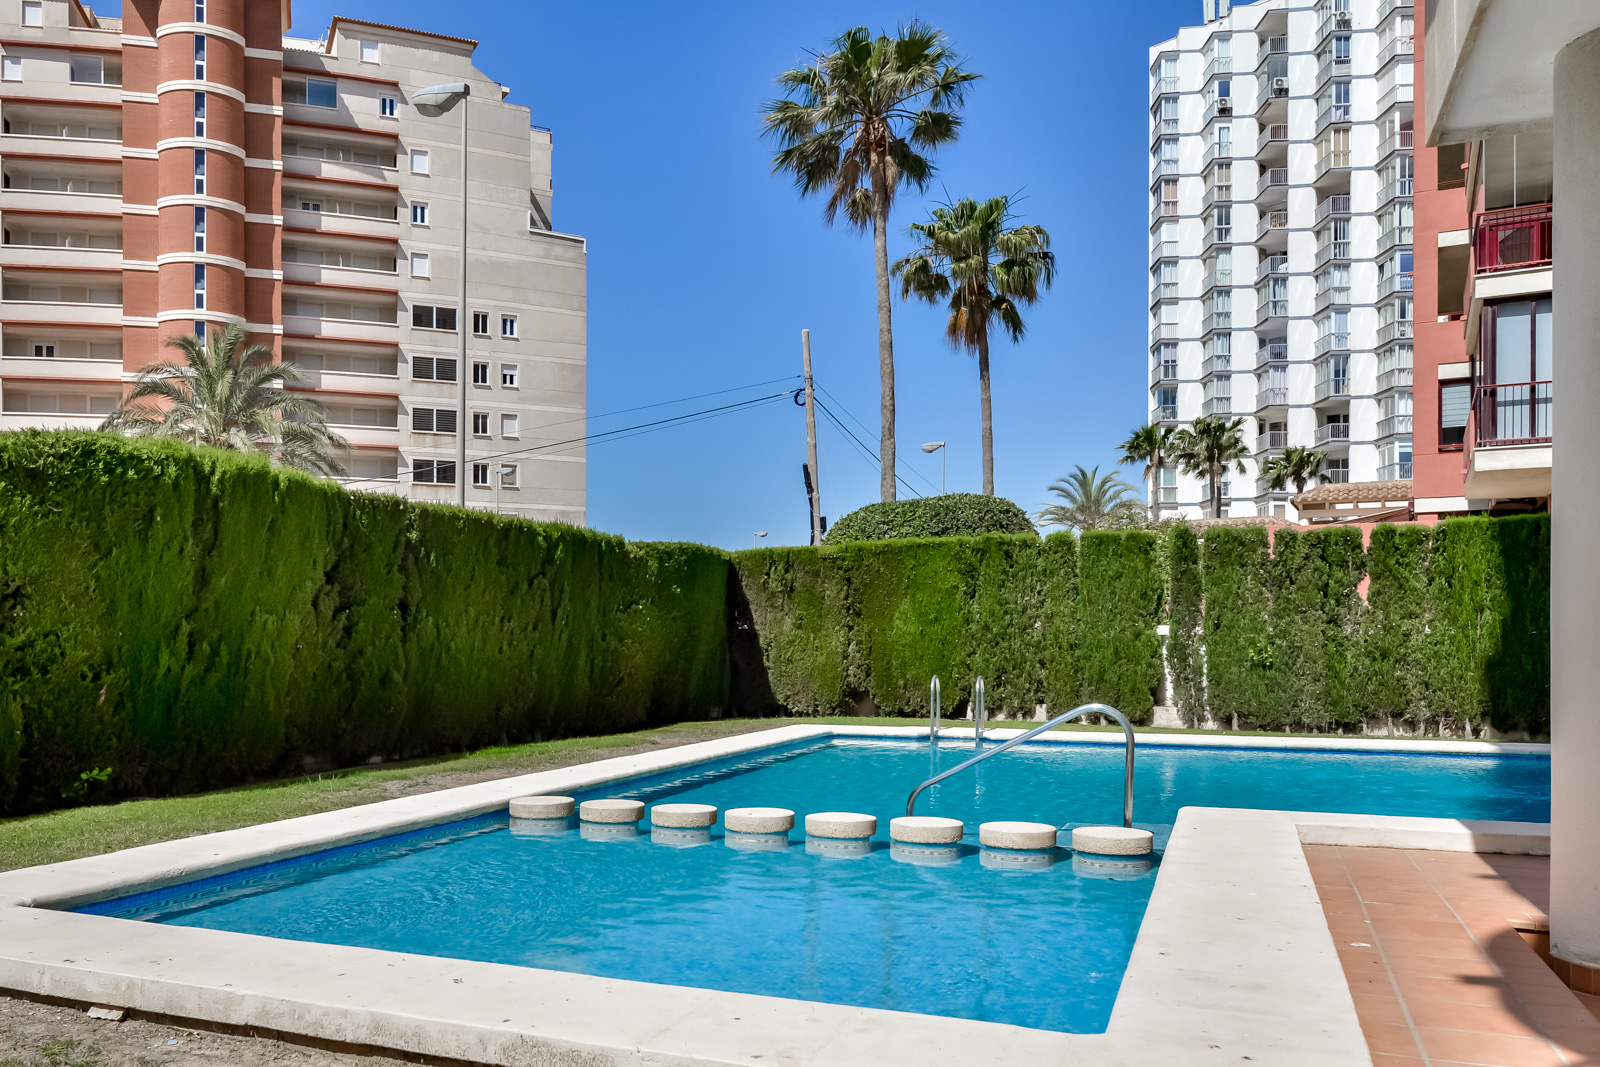 Apartamento Las Garzas 3A, Apartment  with communal pool in Calpe, on the Costa Blanca, Spain for 4 persons.....